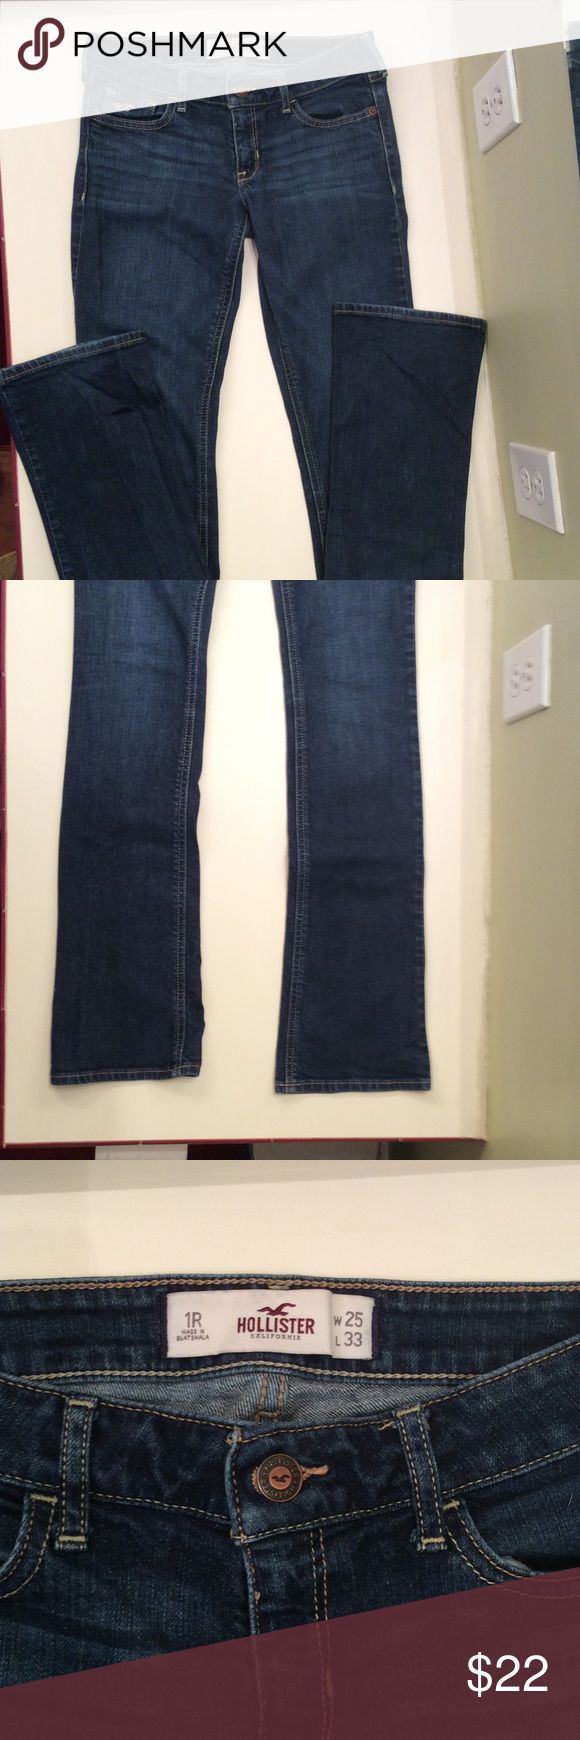 Hollister boot cut jeans Hollister boot cut jeans in great shape. Waist size 25 length is 33. Hollister Jeans Boot Cut